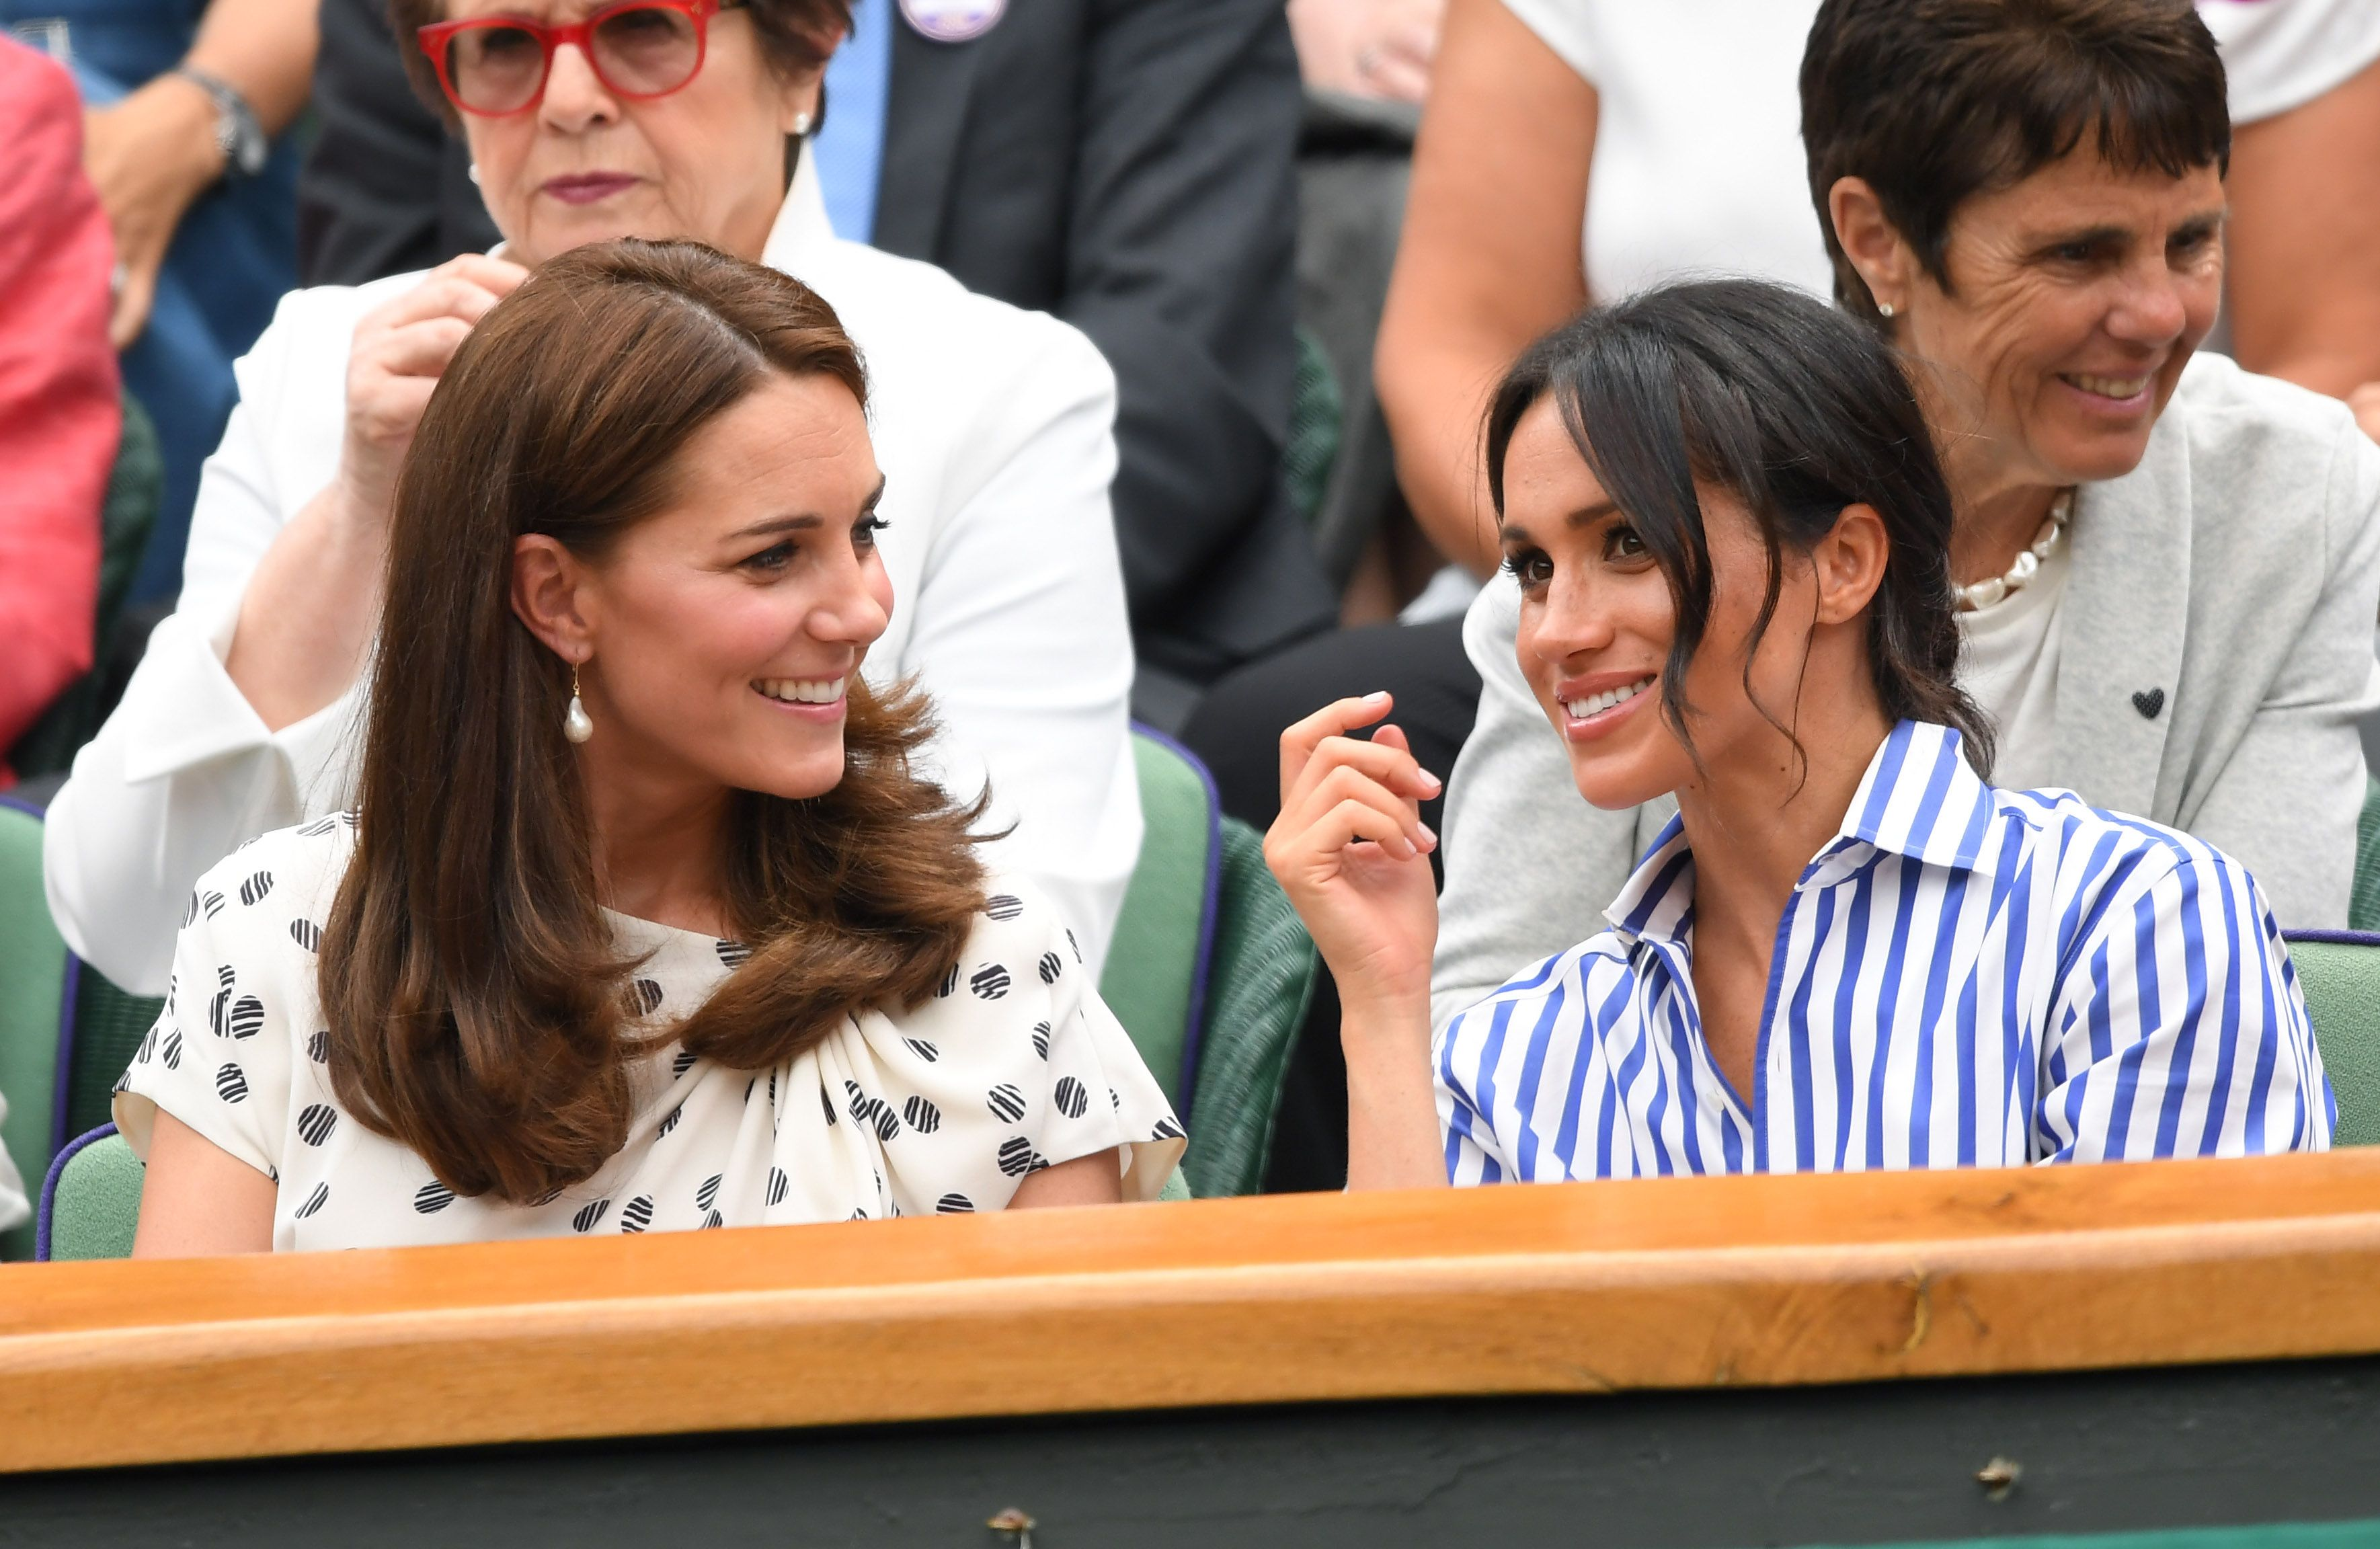 The Genius Way Meghan Markle and Kate Middleton Apparently Keep Their Skirts from Flying Up